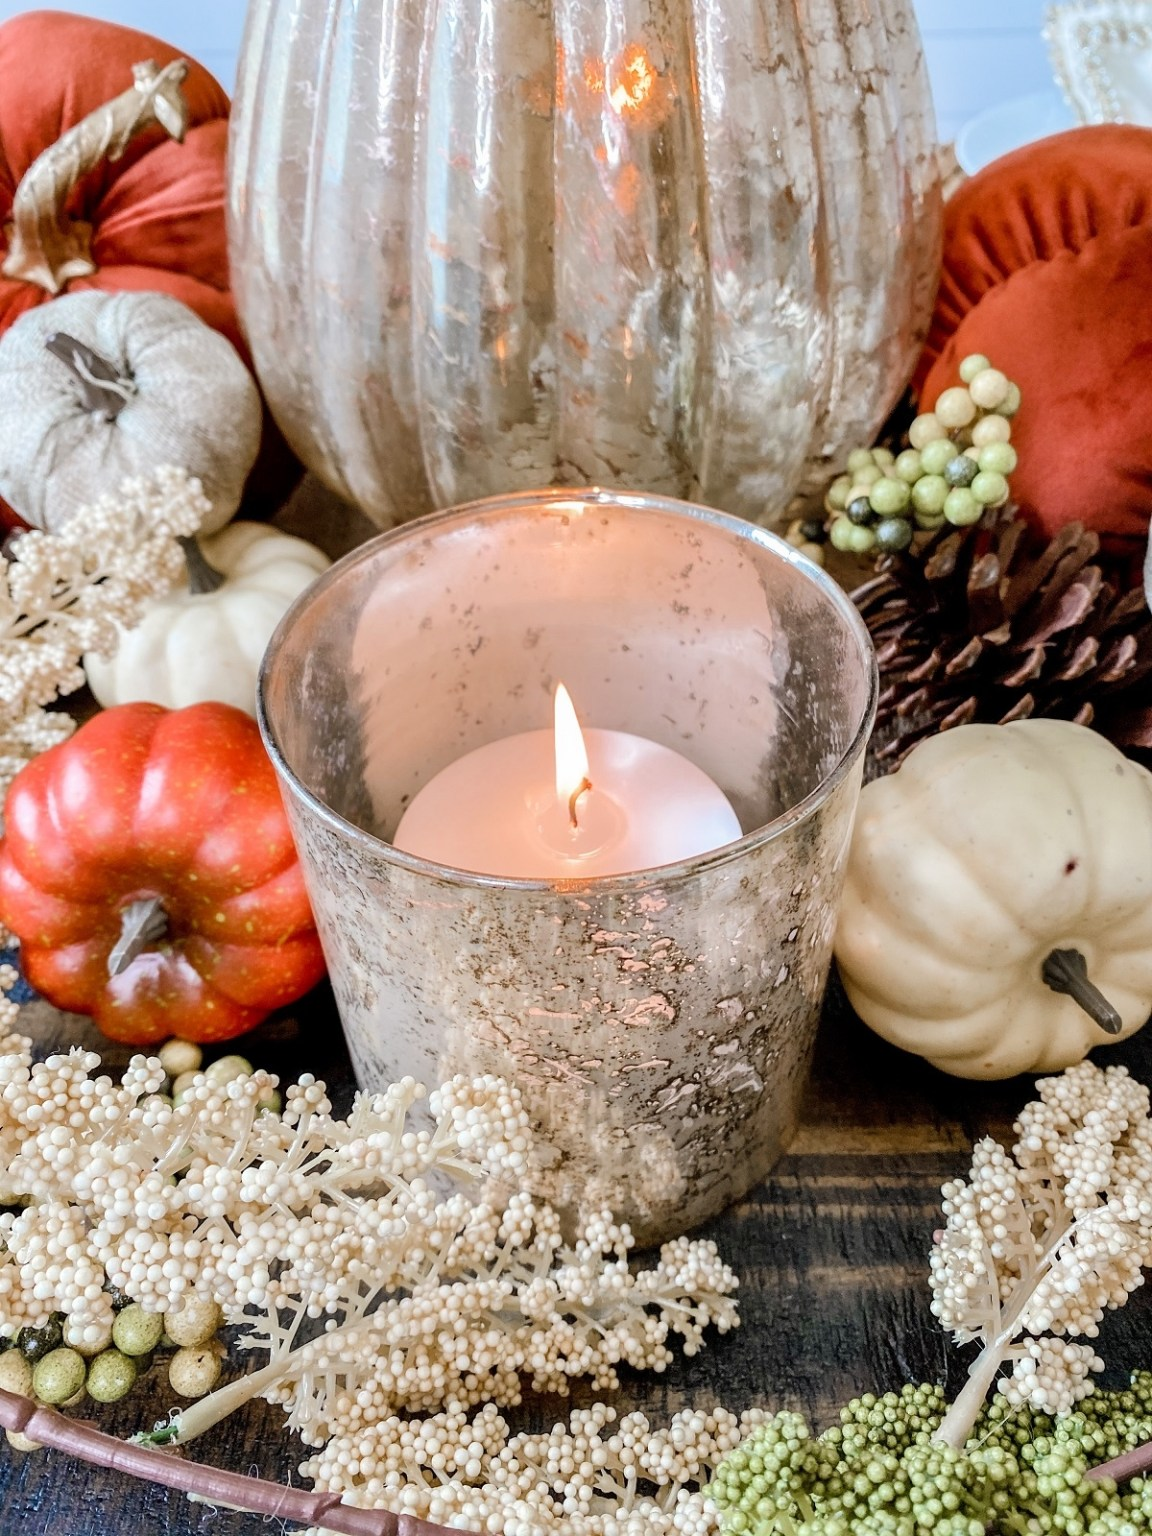 A lit candle for cozy fall vibes